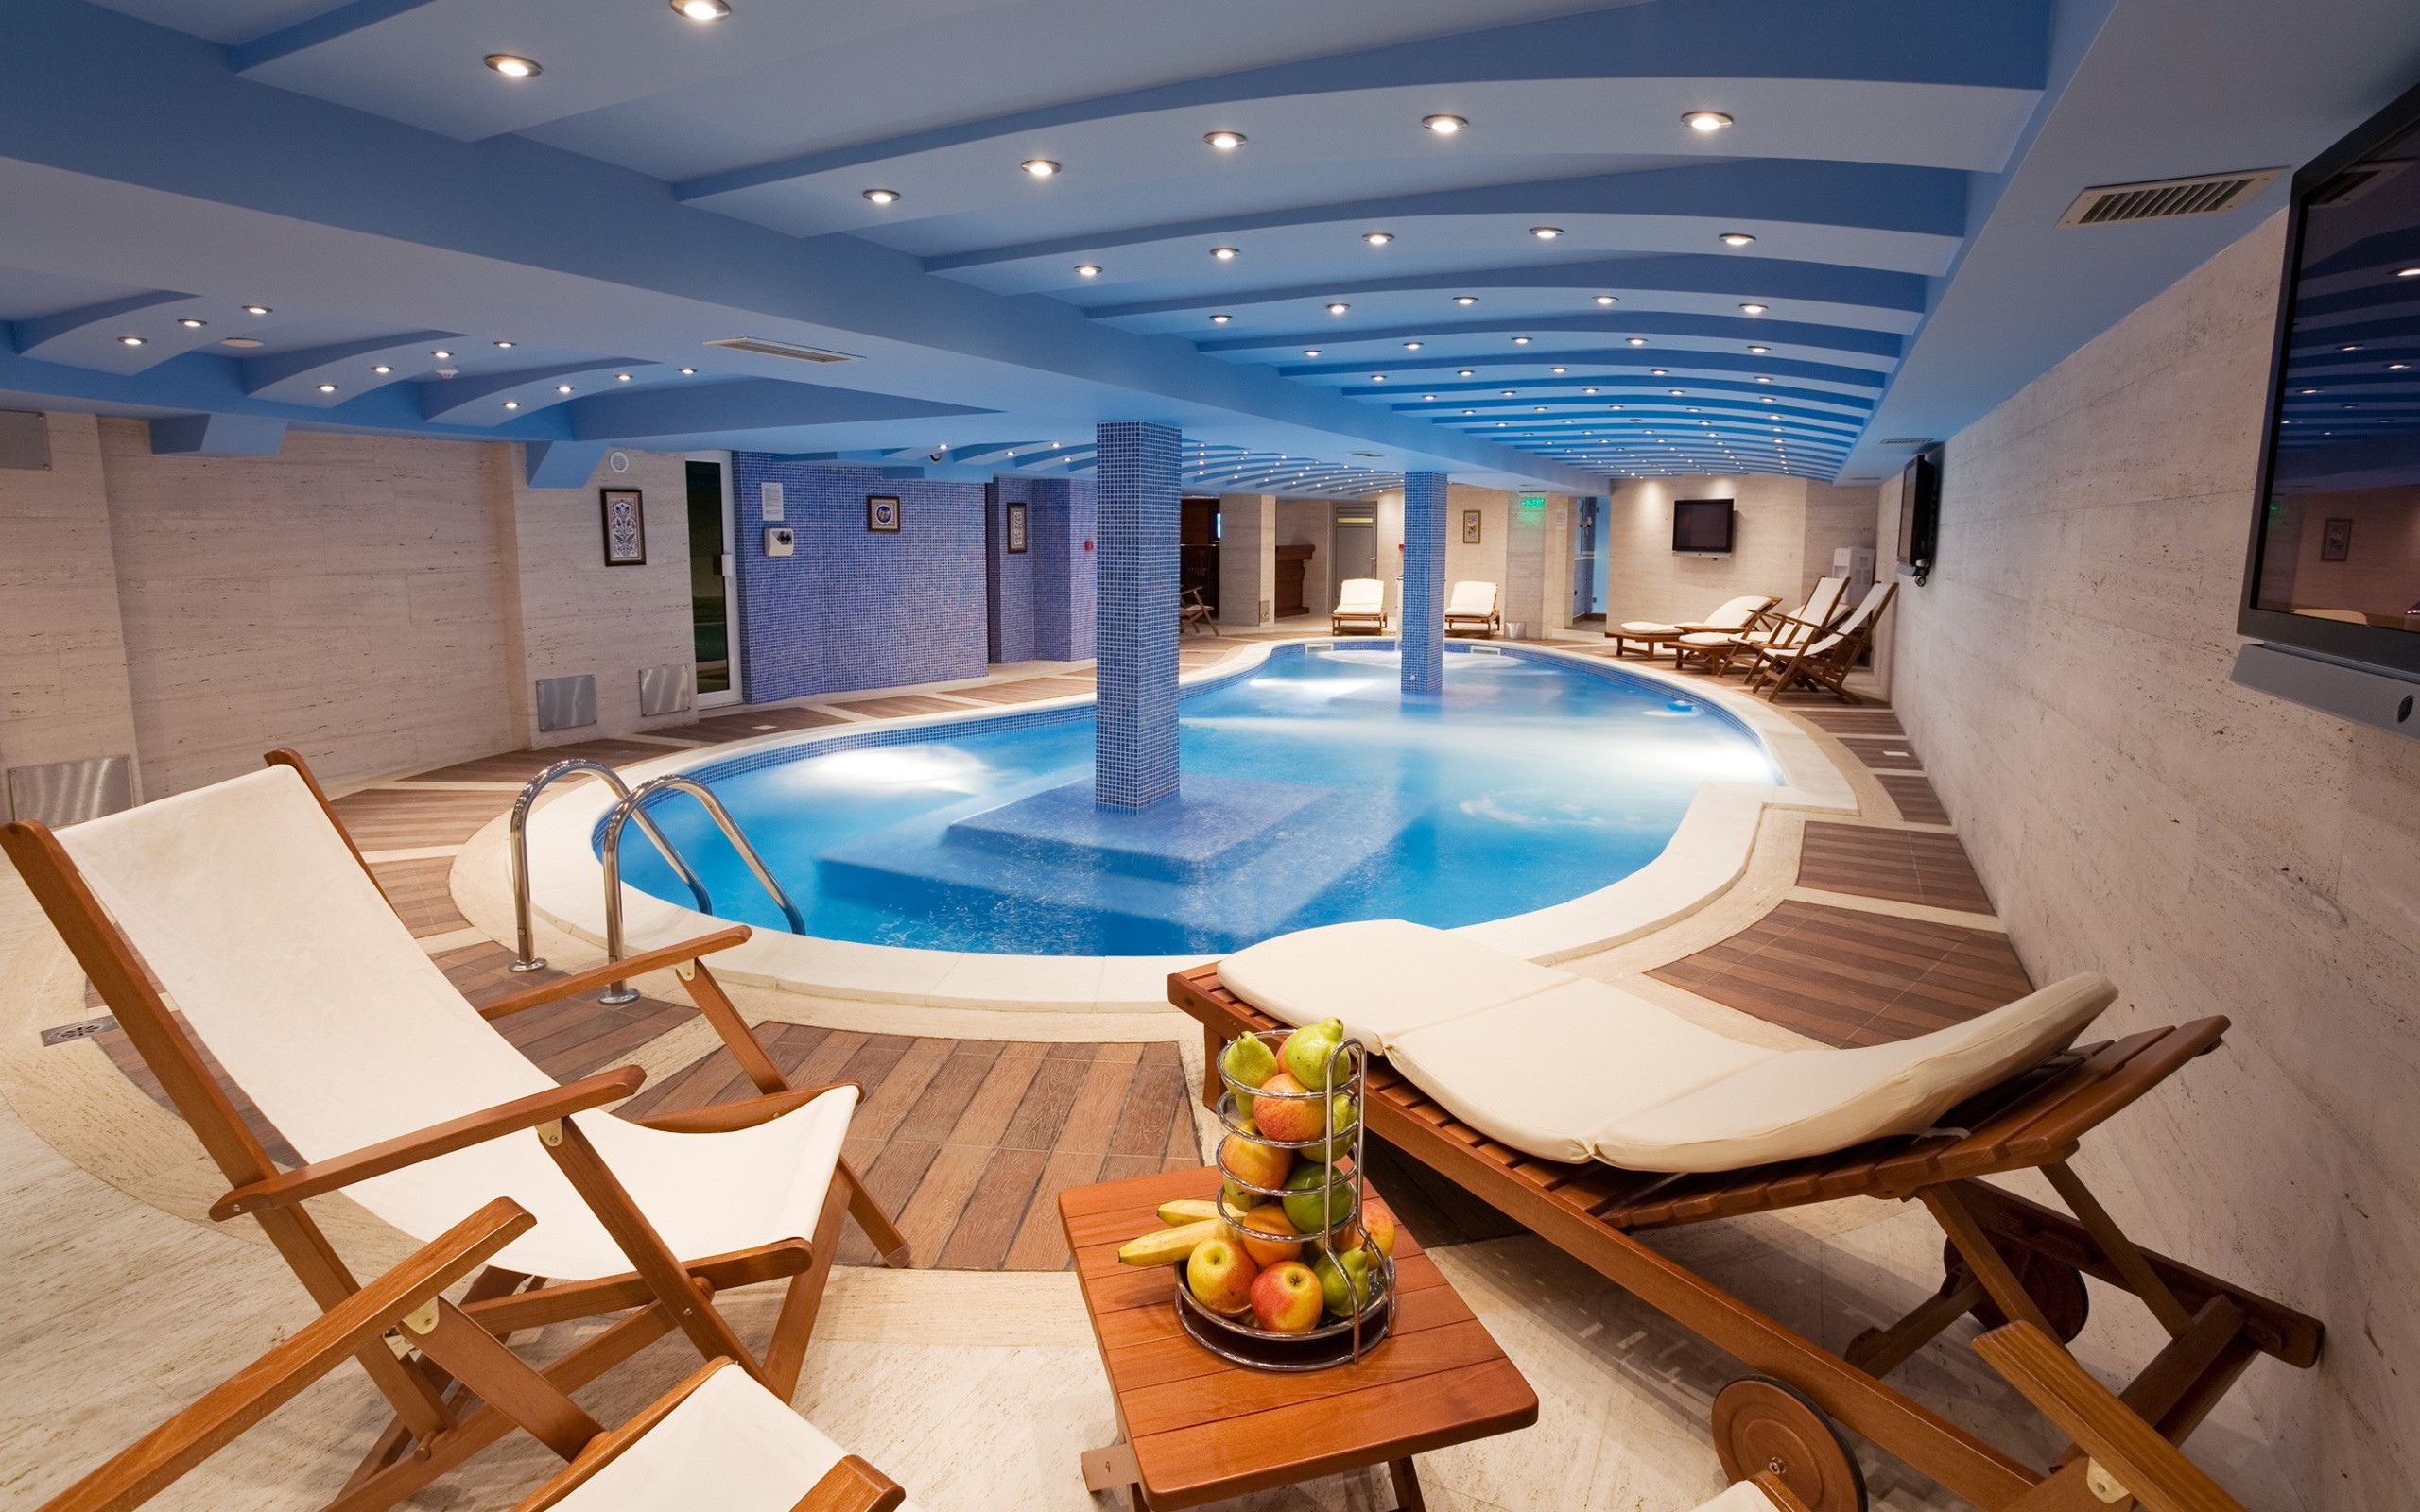 … Indoor Swimming Pool for the Best Home Recreation in the View from the  Pool Can Be Luxury Indoor Swimming Pool Wallpaper …